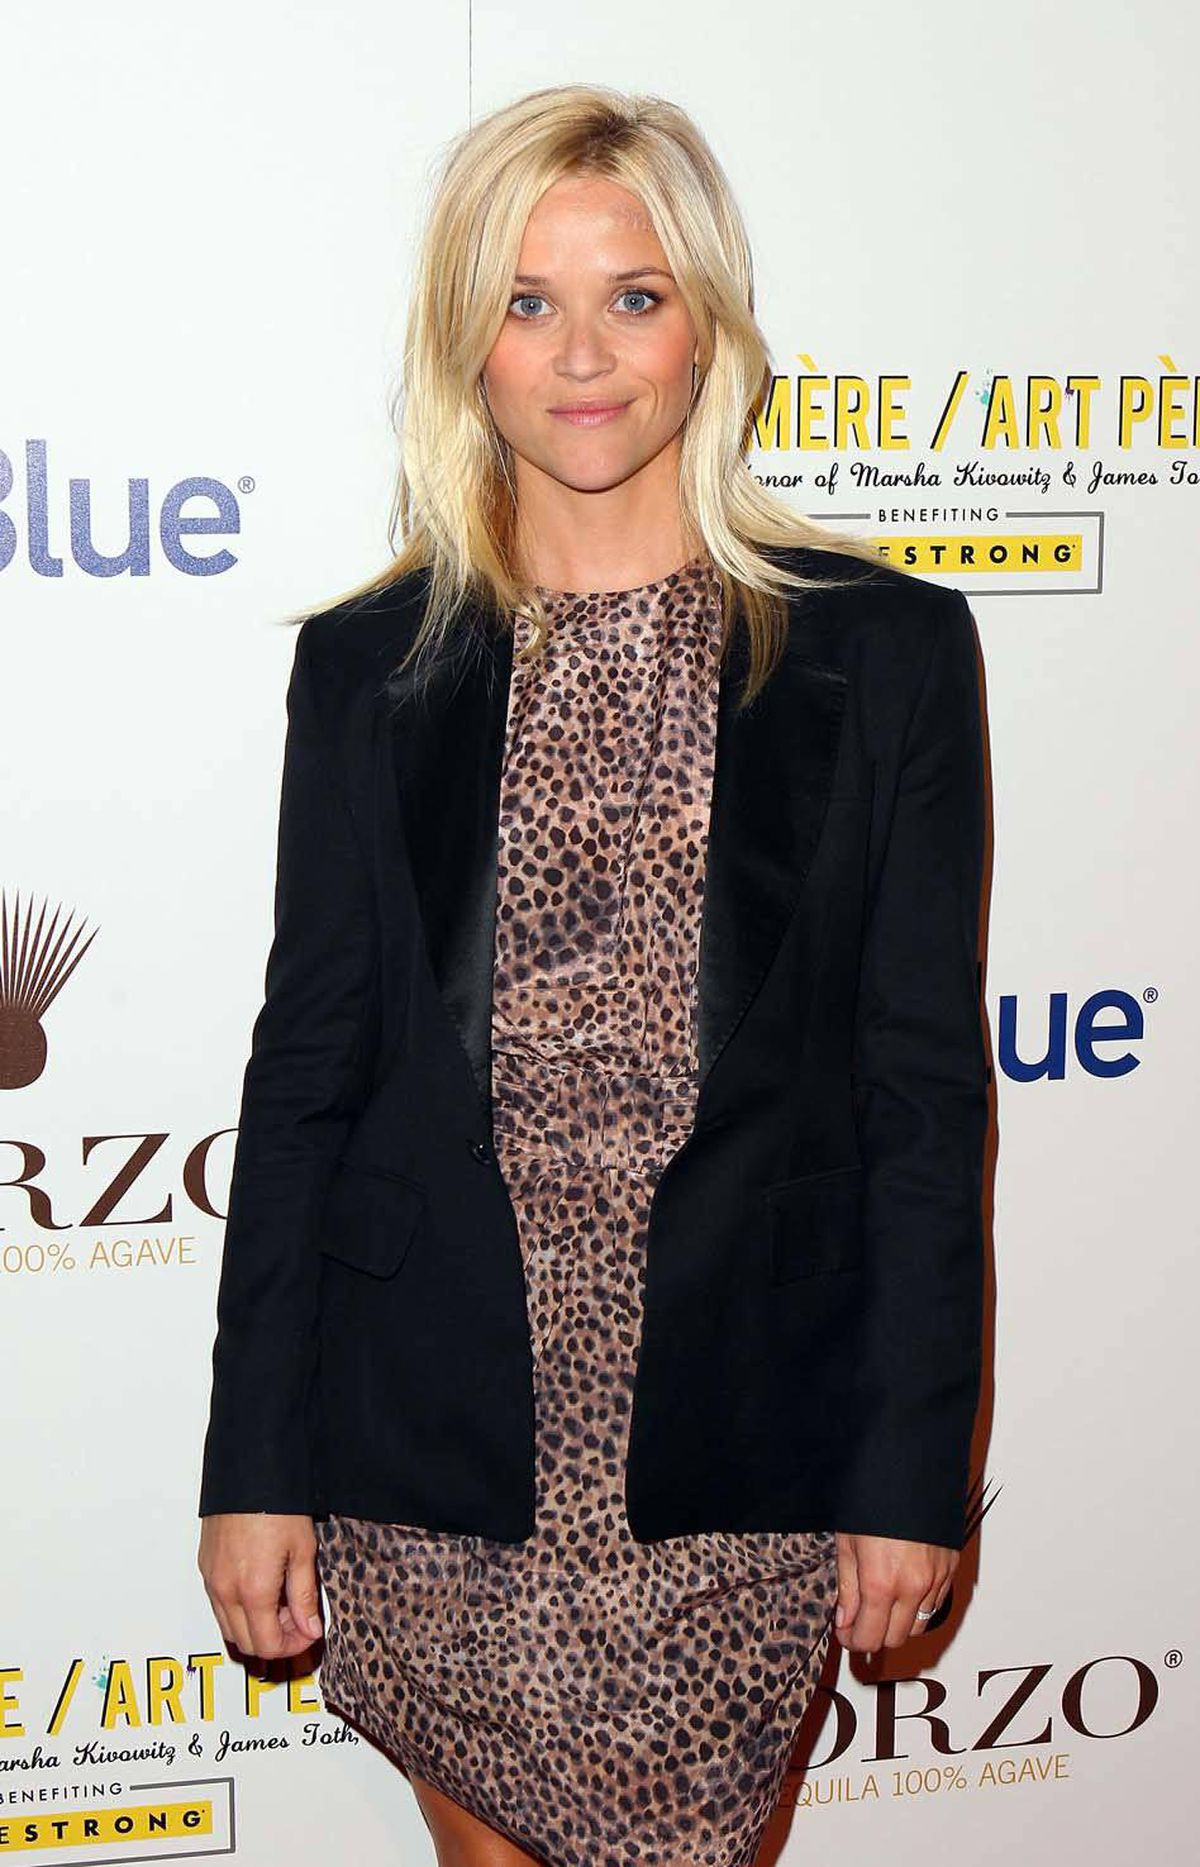 Actress Reese Witherspoon wore three shades of boring to the Art Mere/Art Pere Night. In West Hollywood. Last week.